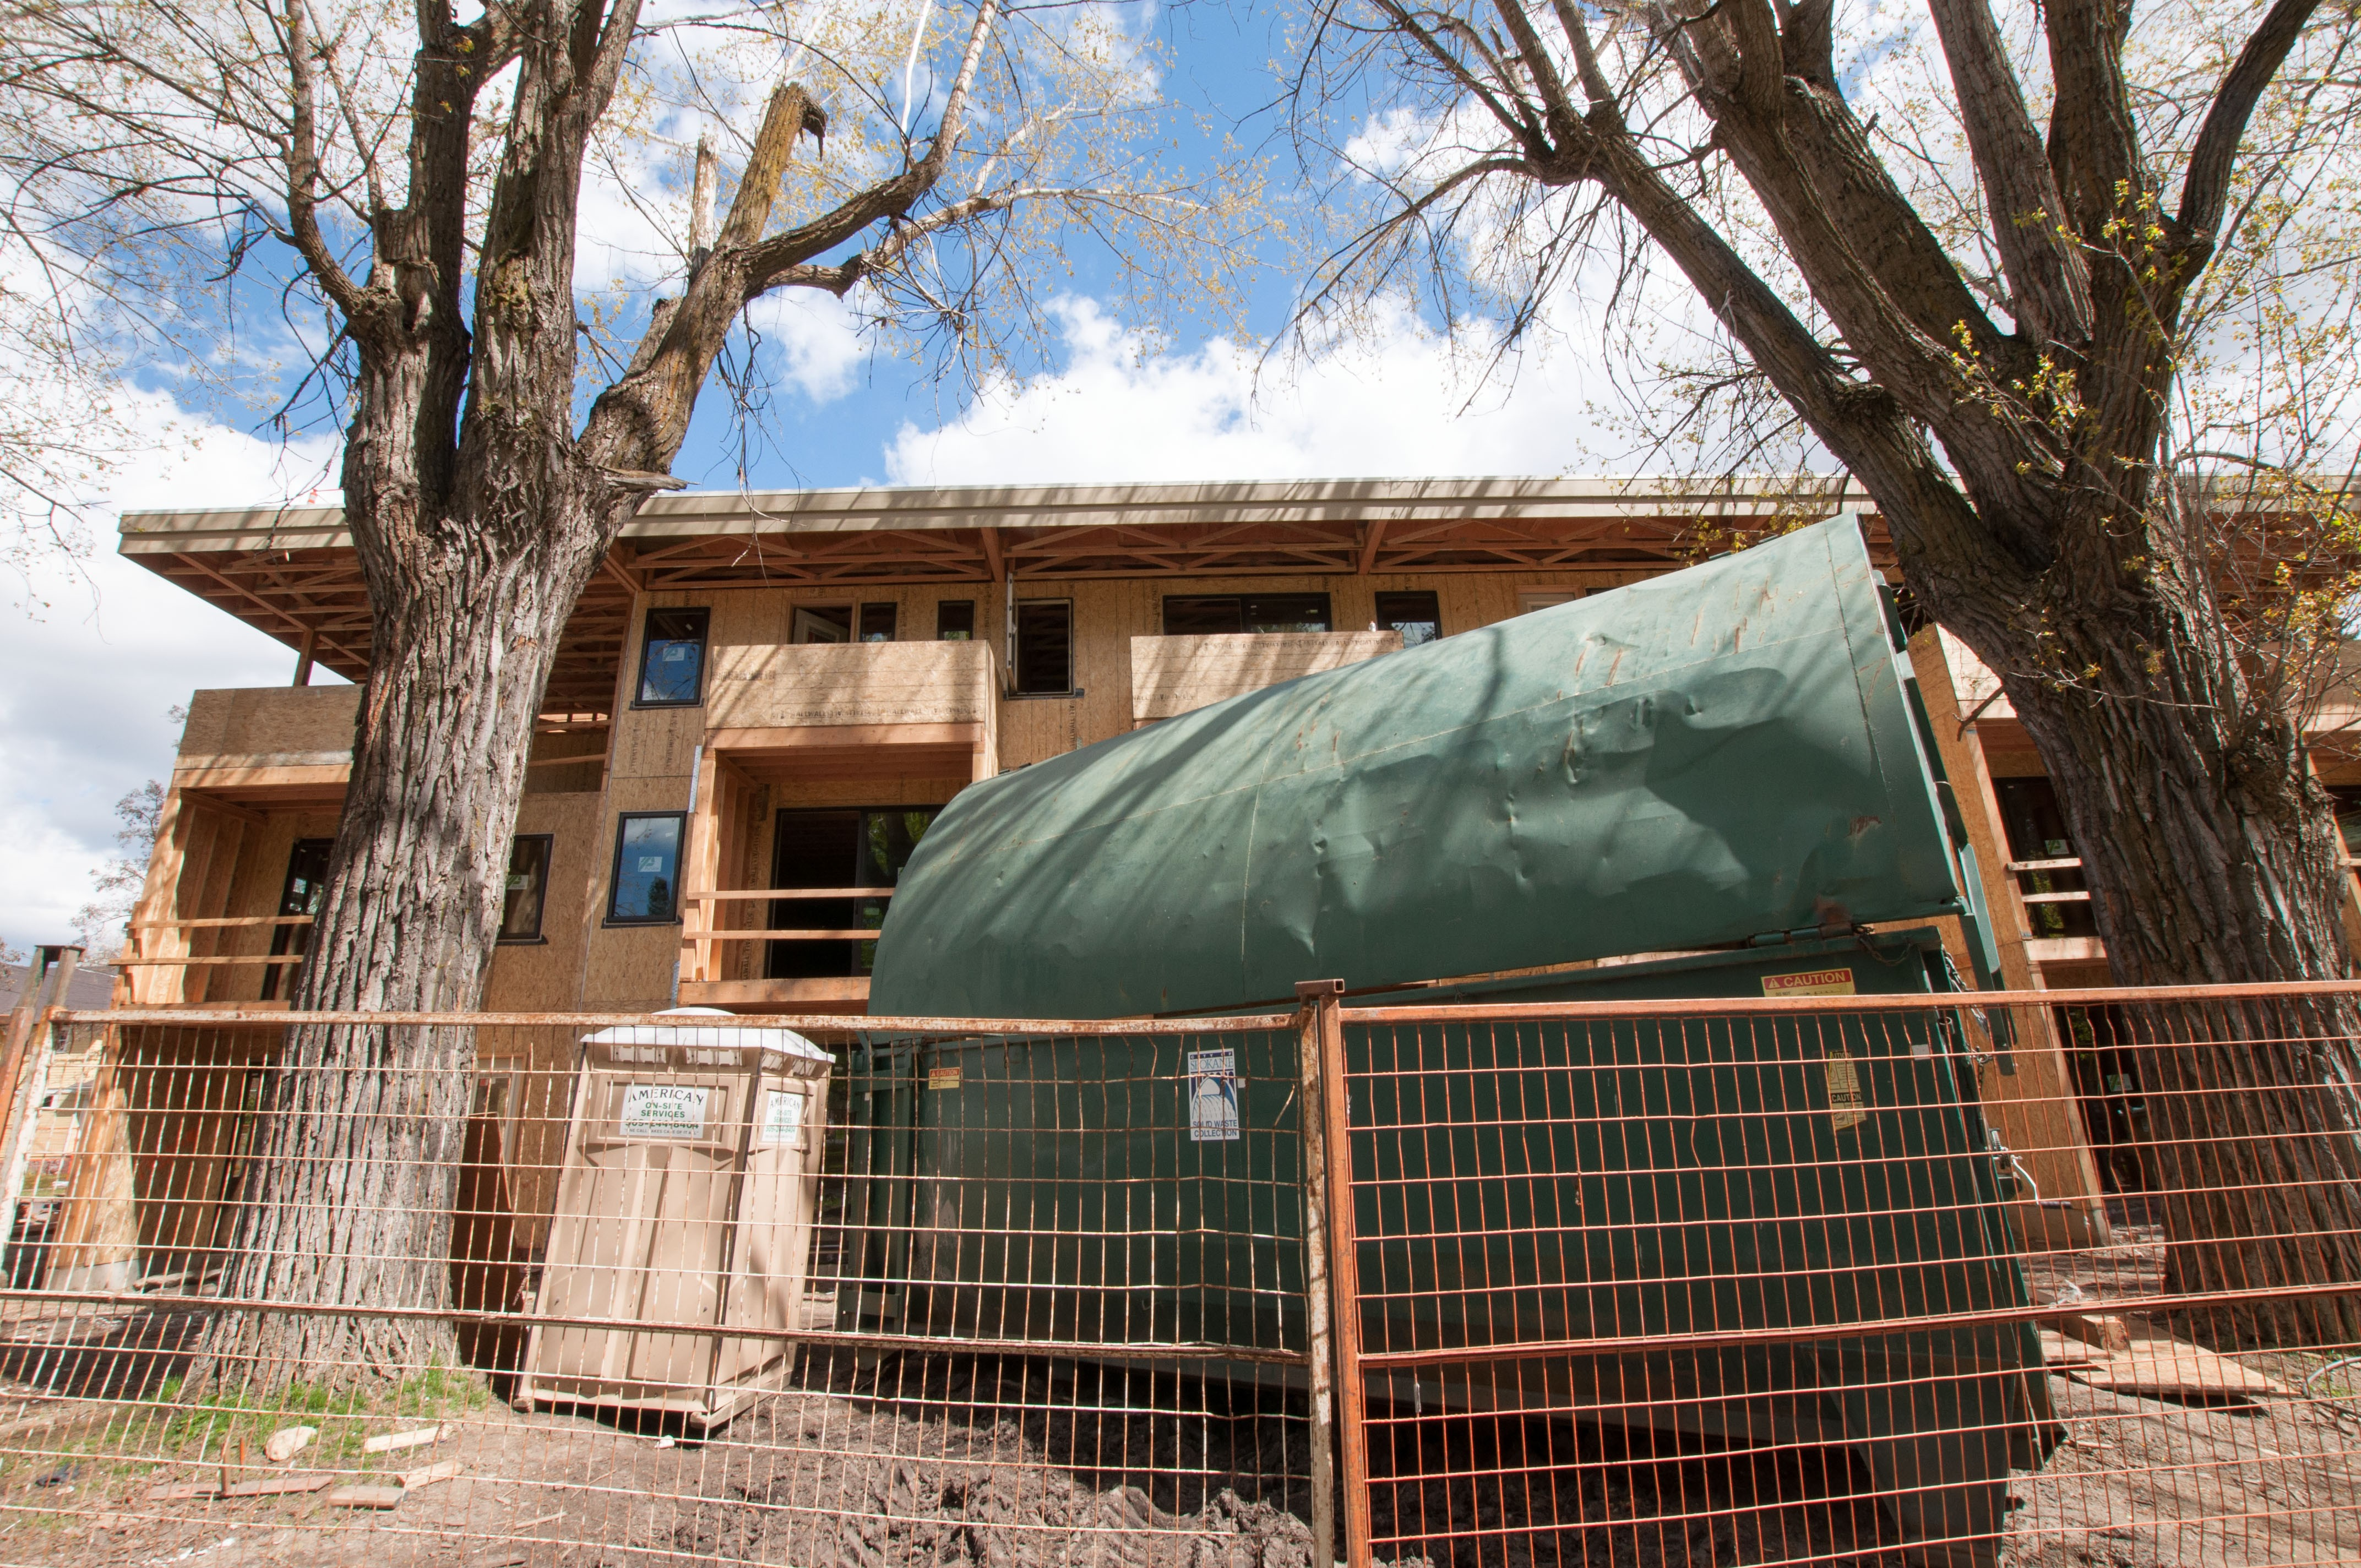 Tell me, how much about now it is necessary to demolish the old house in the village Located in the Moscow region